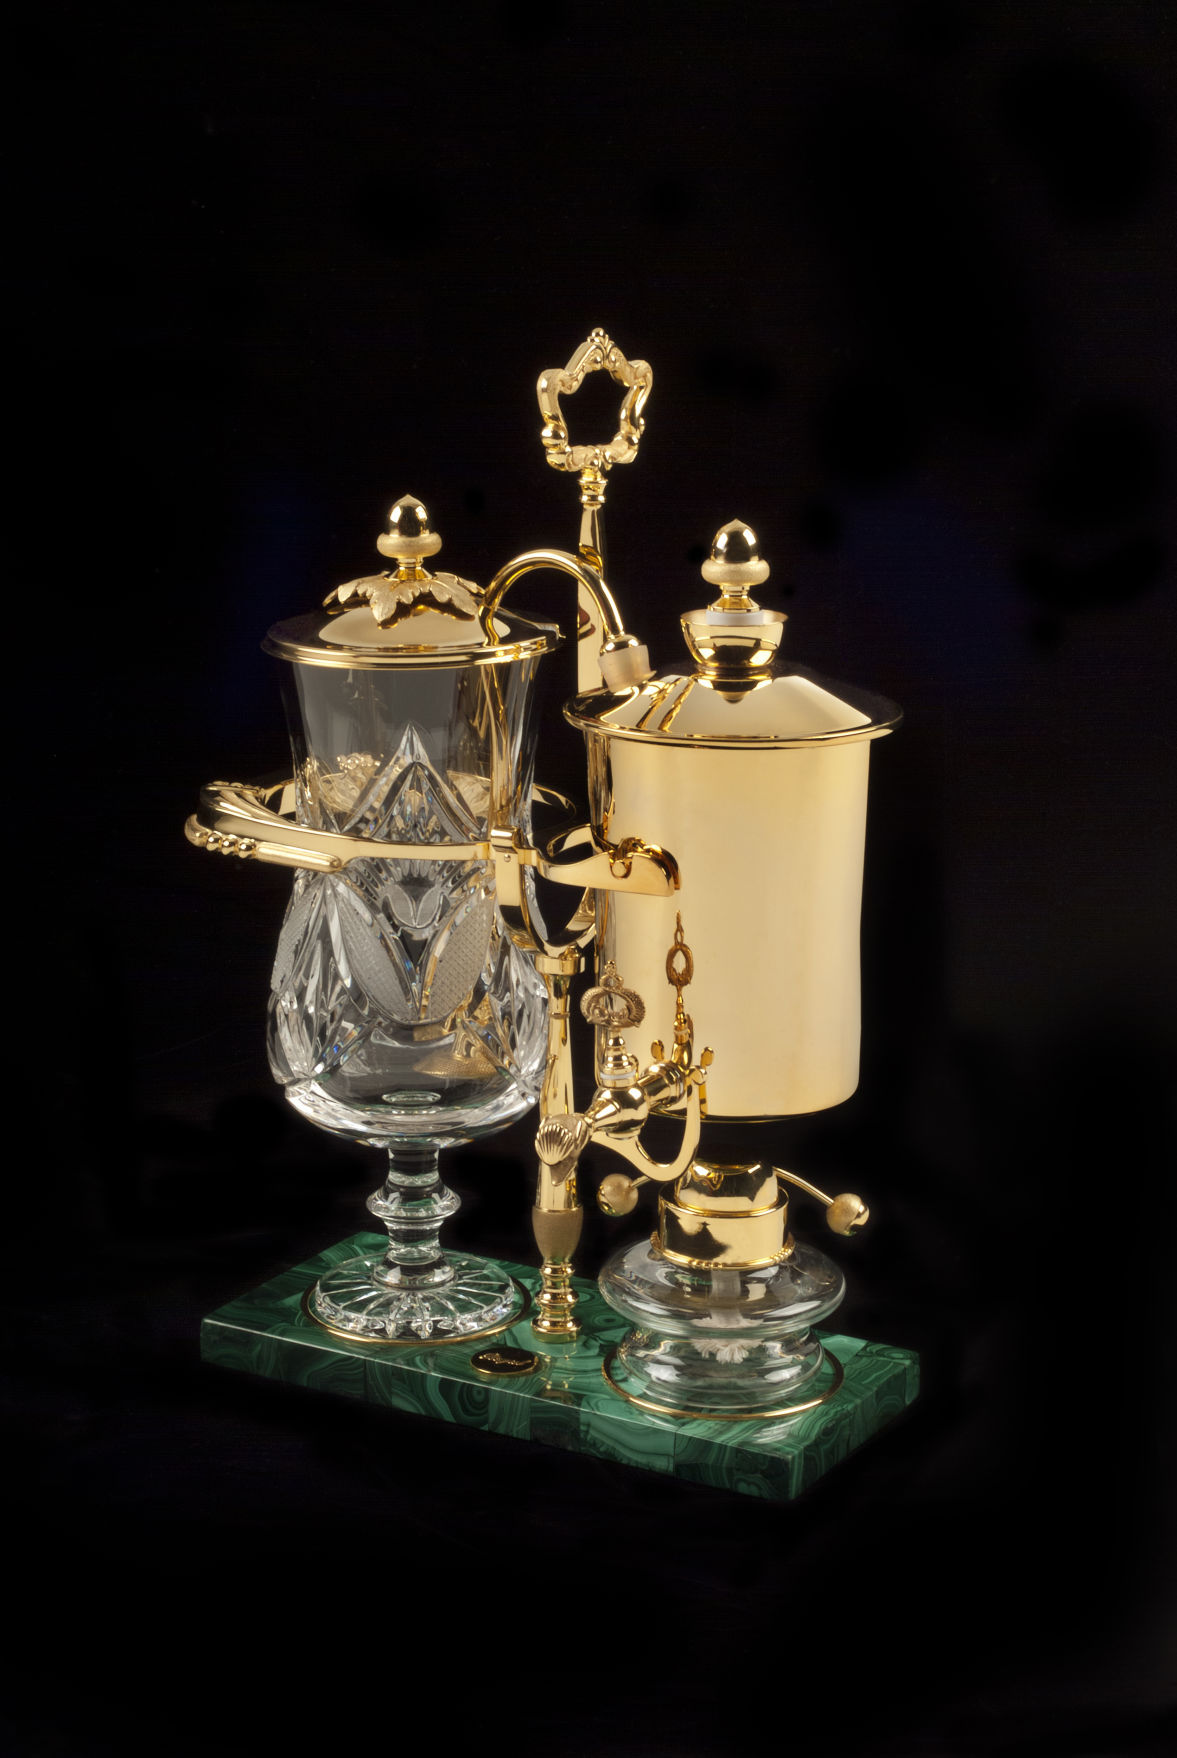 Royal Paris Limited Edition Royal Coffee Maker Costs $18,000